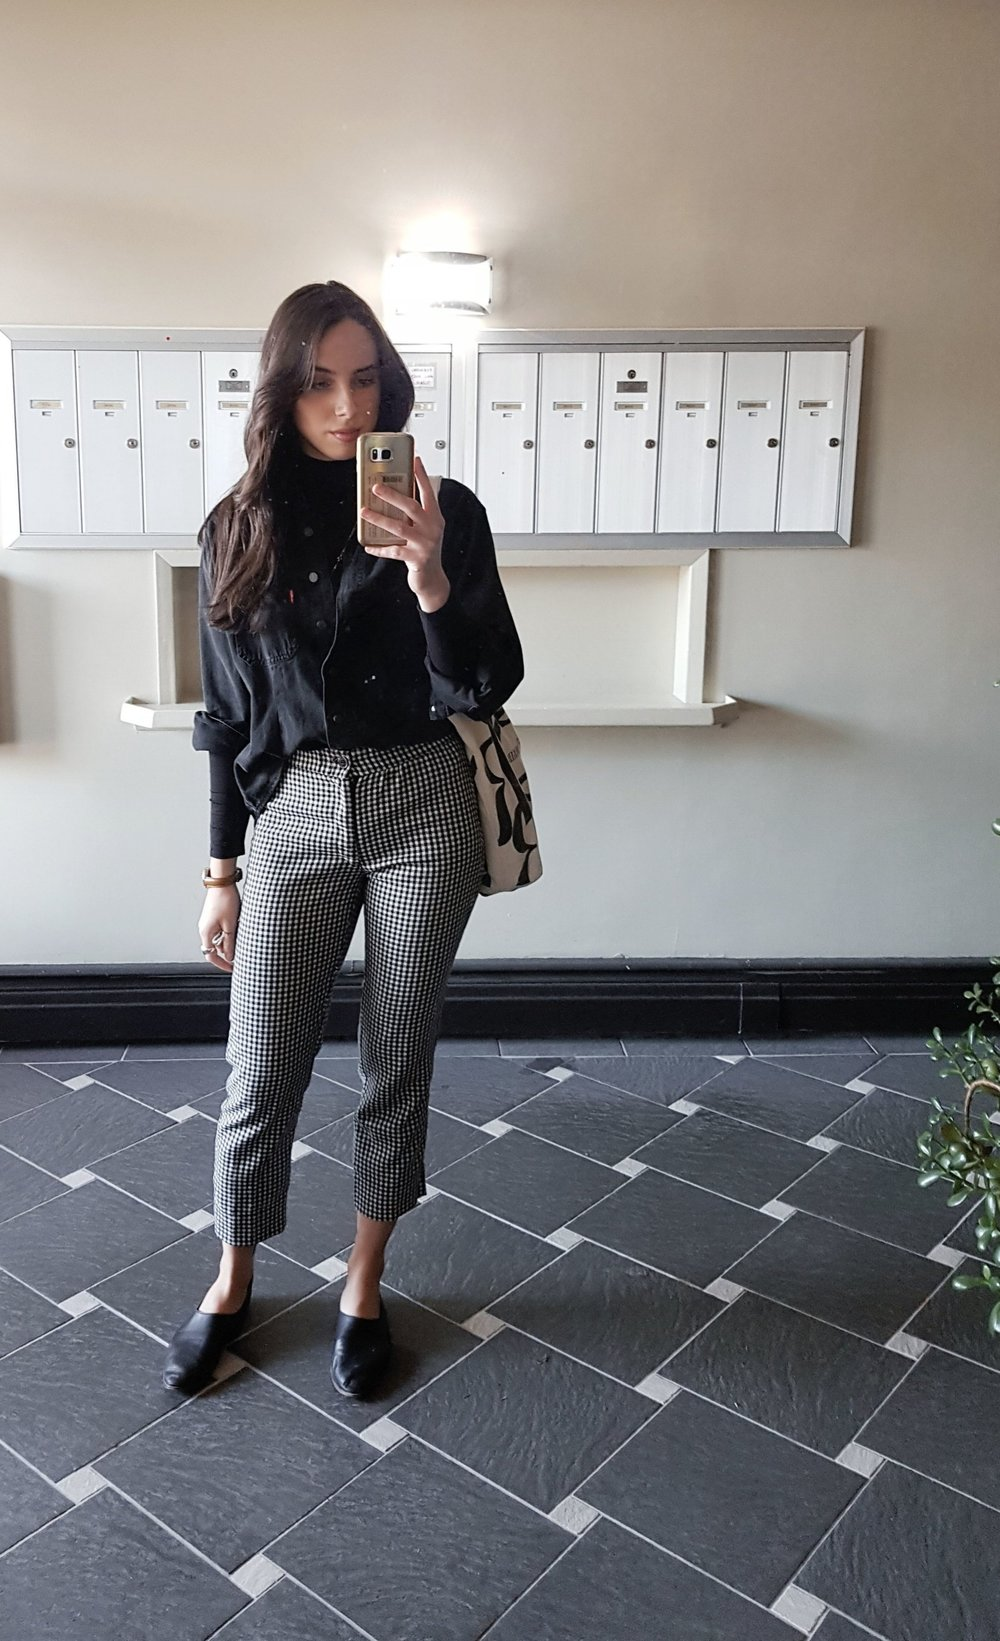 TUESDAY - Dynamite turtleneck, Levis denim shirt (I found it left behind at one of my old apartments), Zumiez pants, Zara shoes